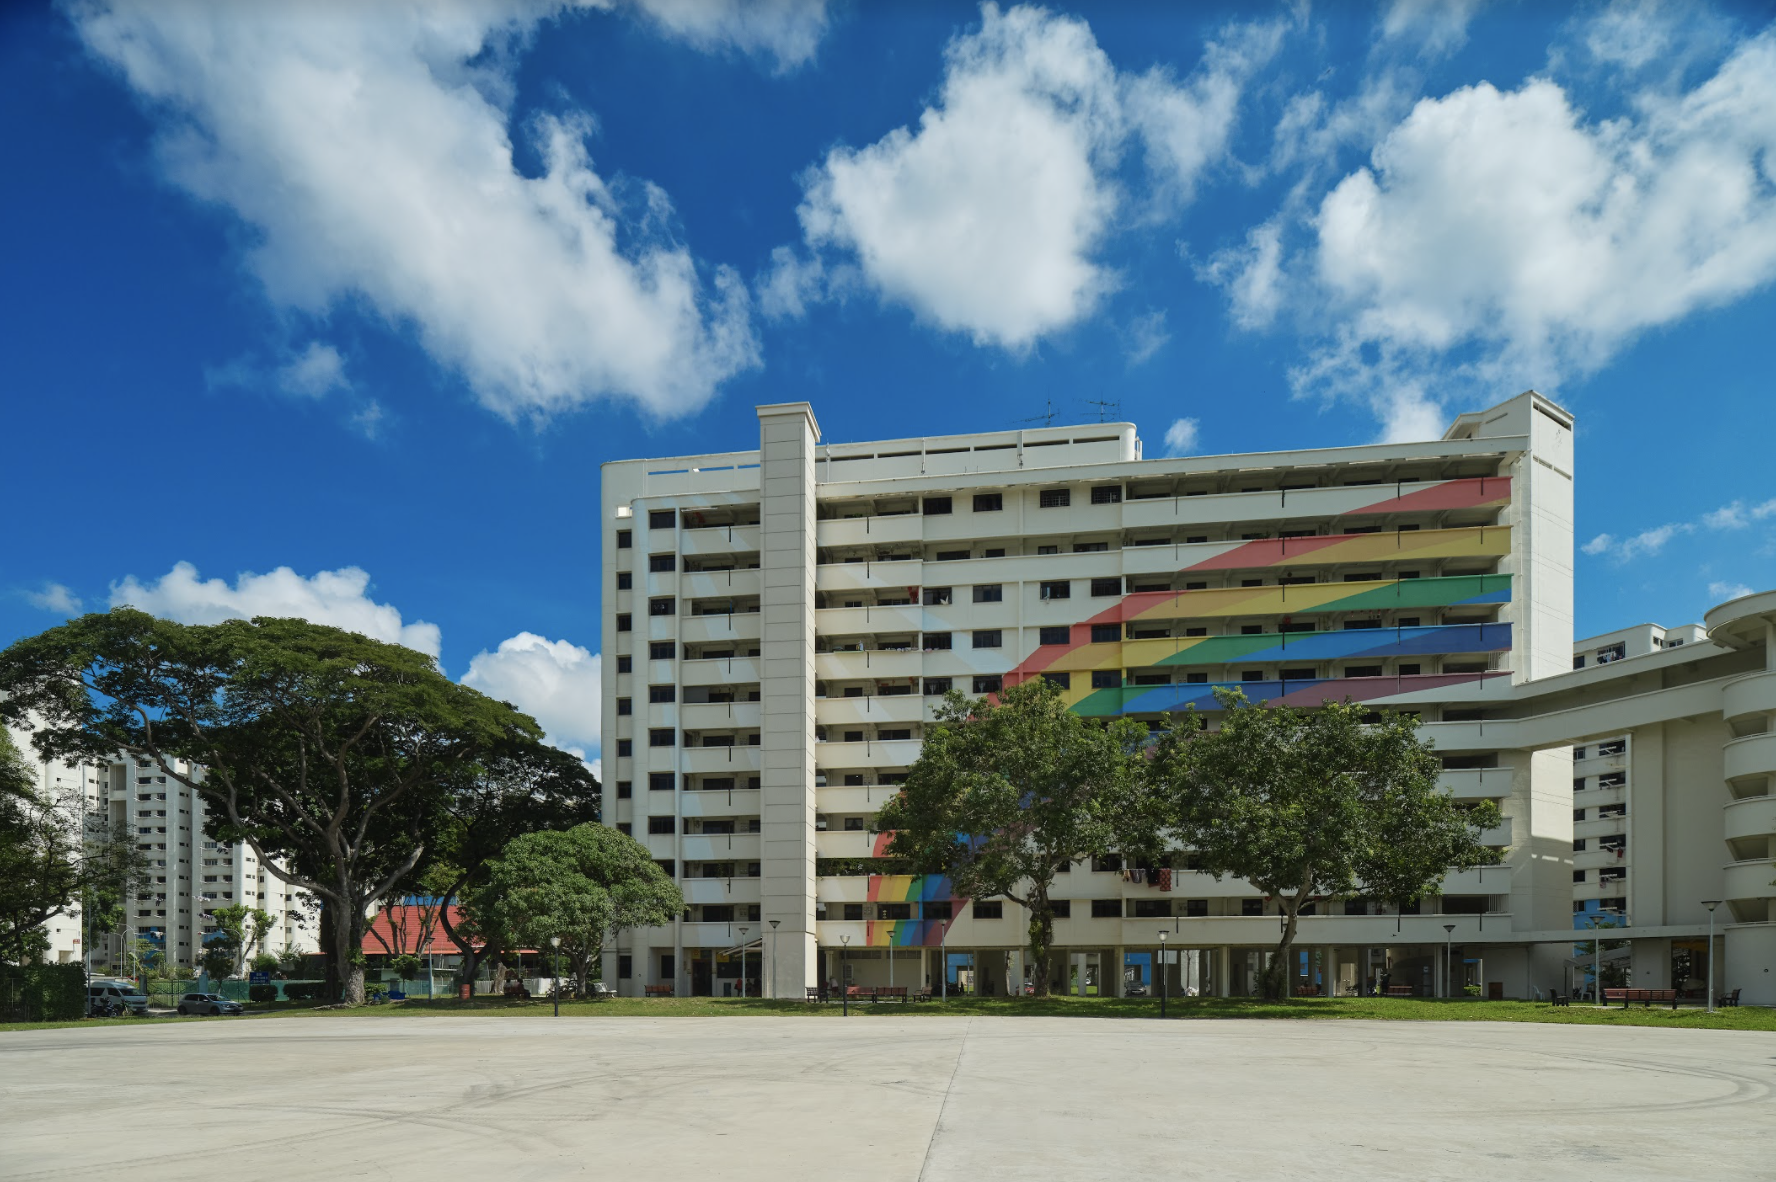 Block 316 with its iconic rainbow mural painted on its façade at Hougang Avenue 7. Photo courtesy: NHB